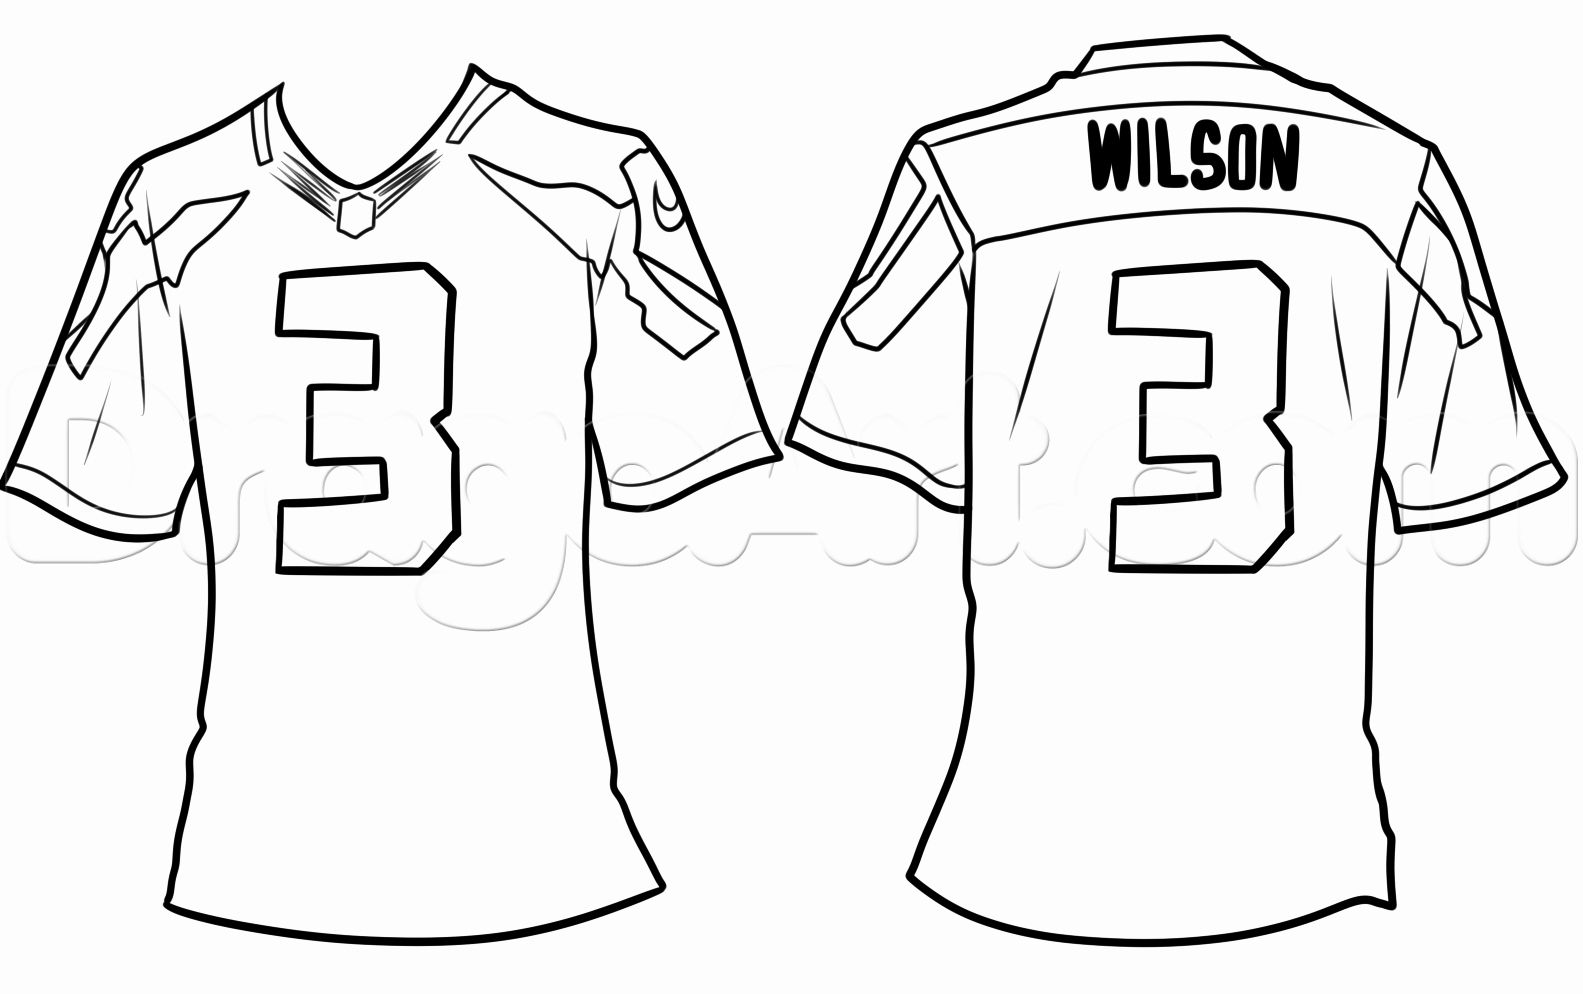 Football Jersey Coloring Page Luxury Blank Football Jersey Coloring Page Coloring Home Football Jerseys Jersey Football